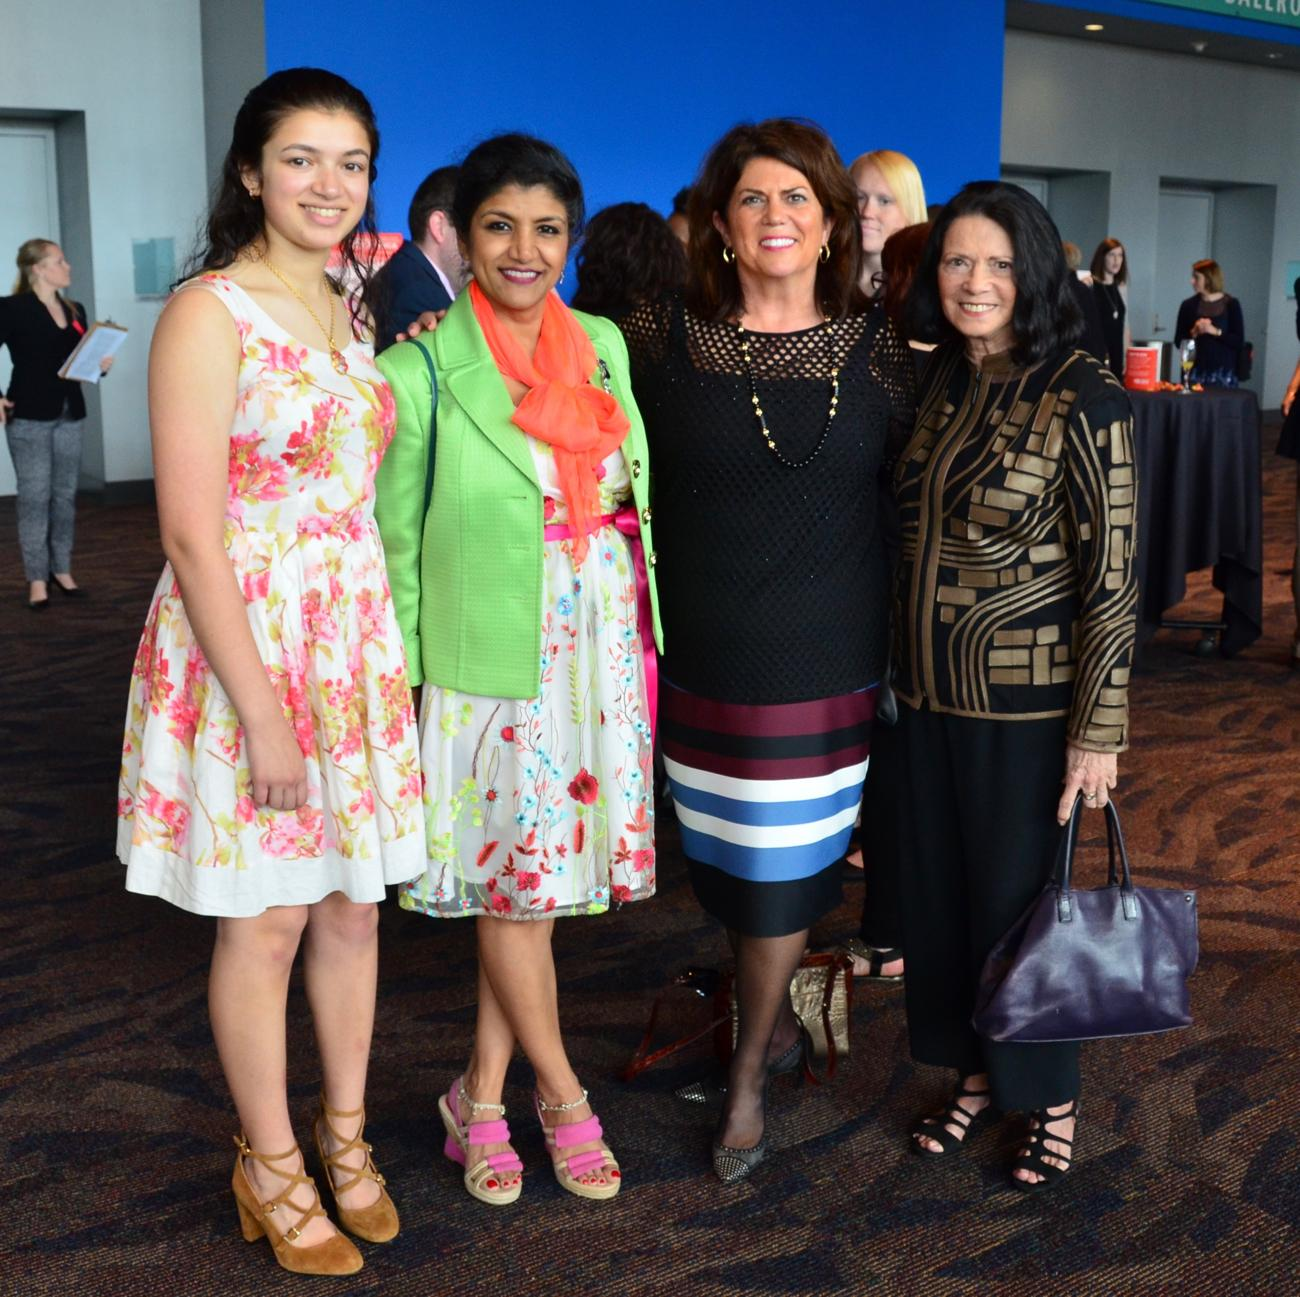 Josi Sammarco, Dr. Lakshmi Sammarco, Kelly Dehan, and Judy Sharp / Image: Leah Zipperstein, Cincinnati Refined // Published: 5.10.18